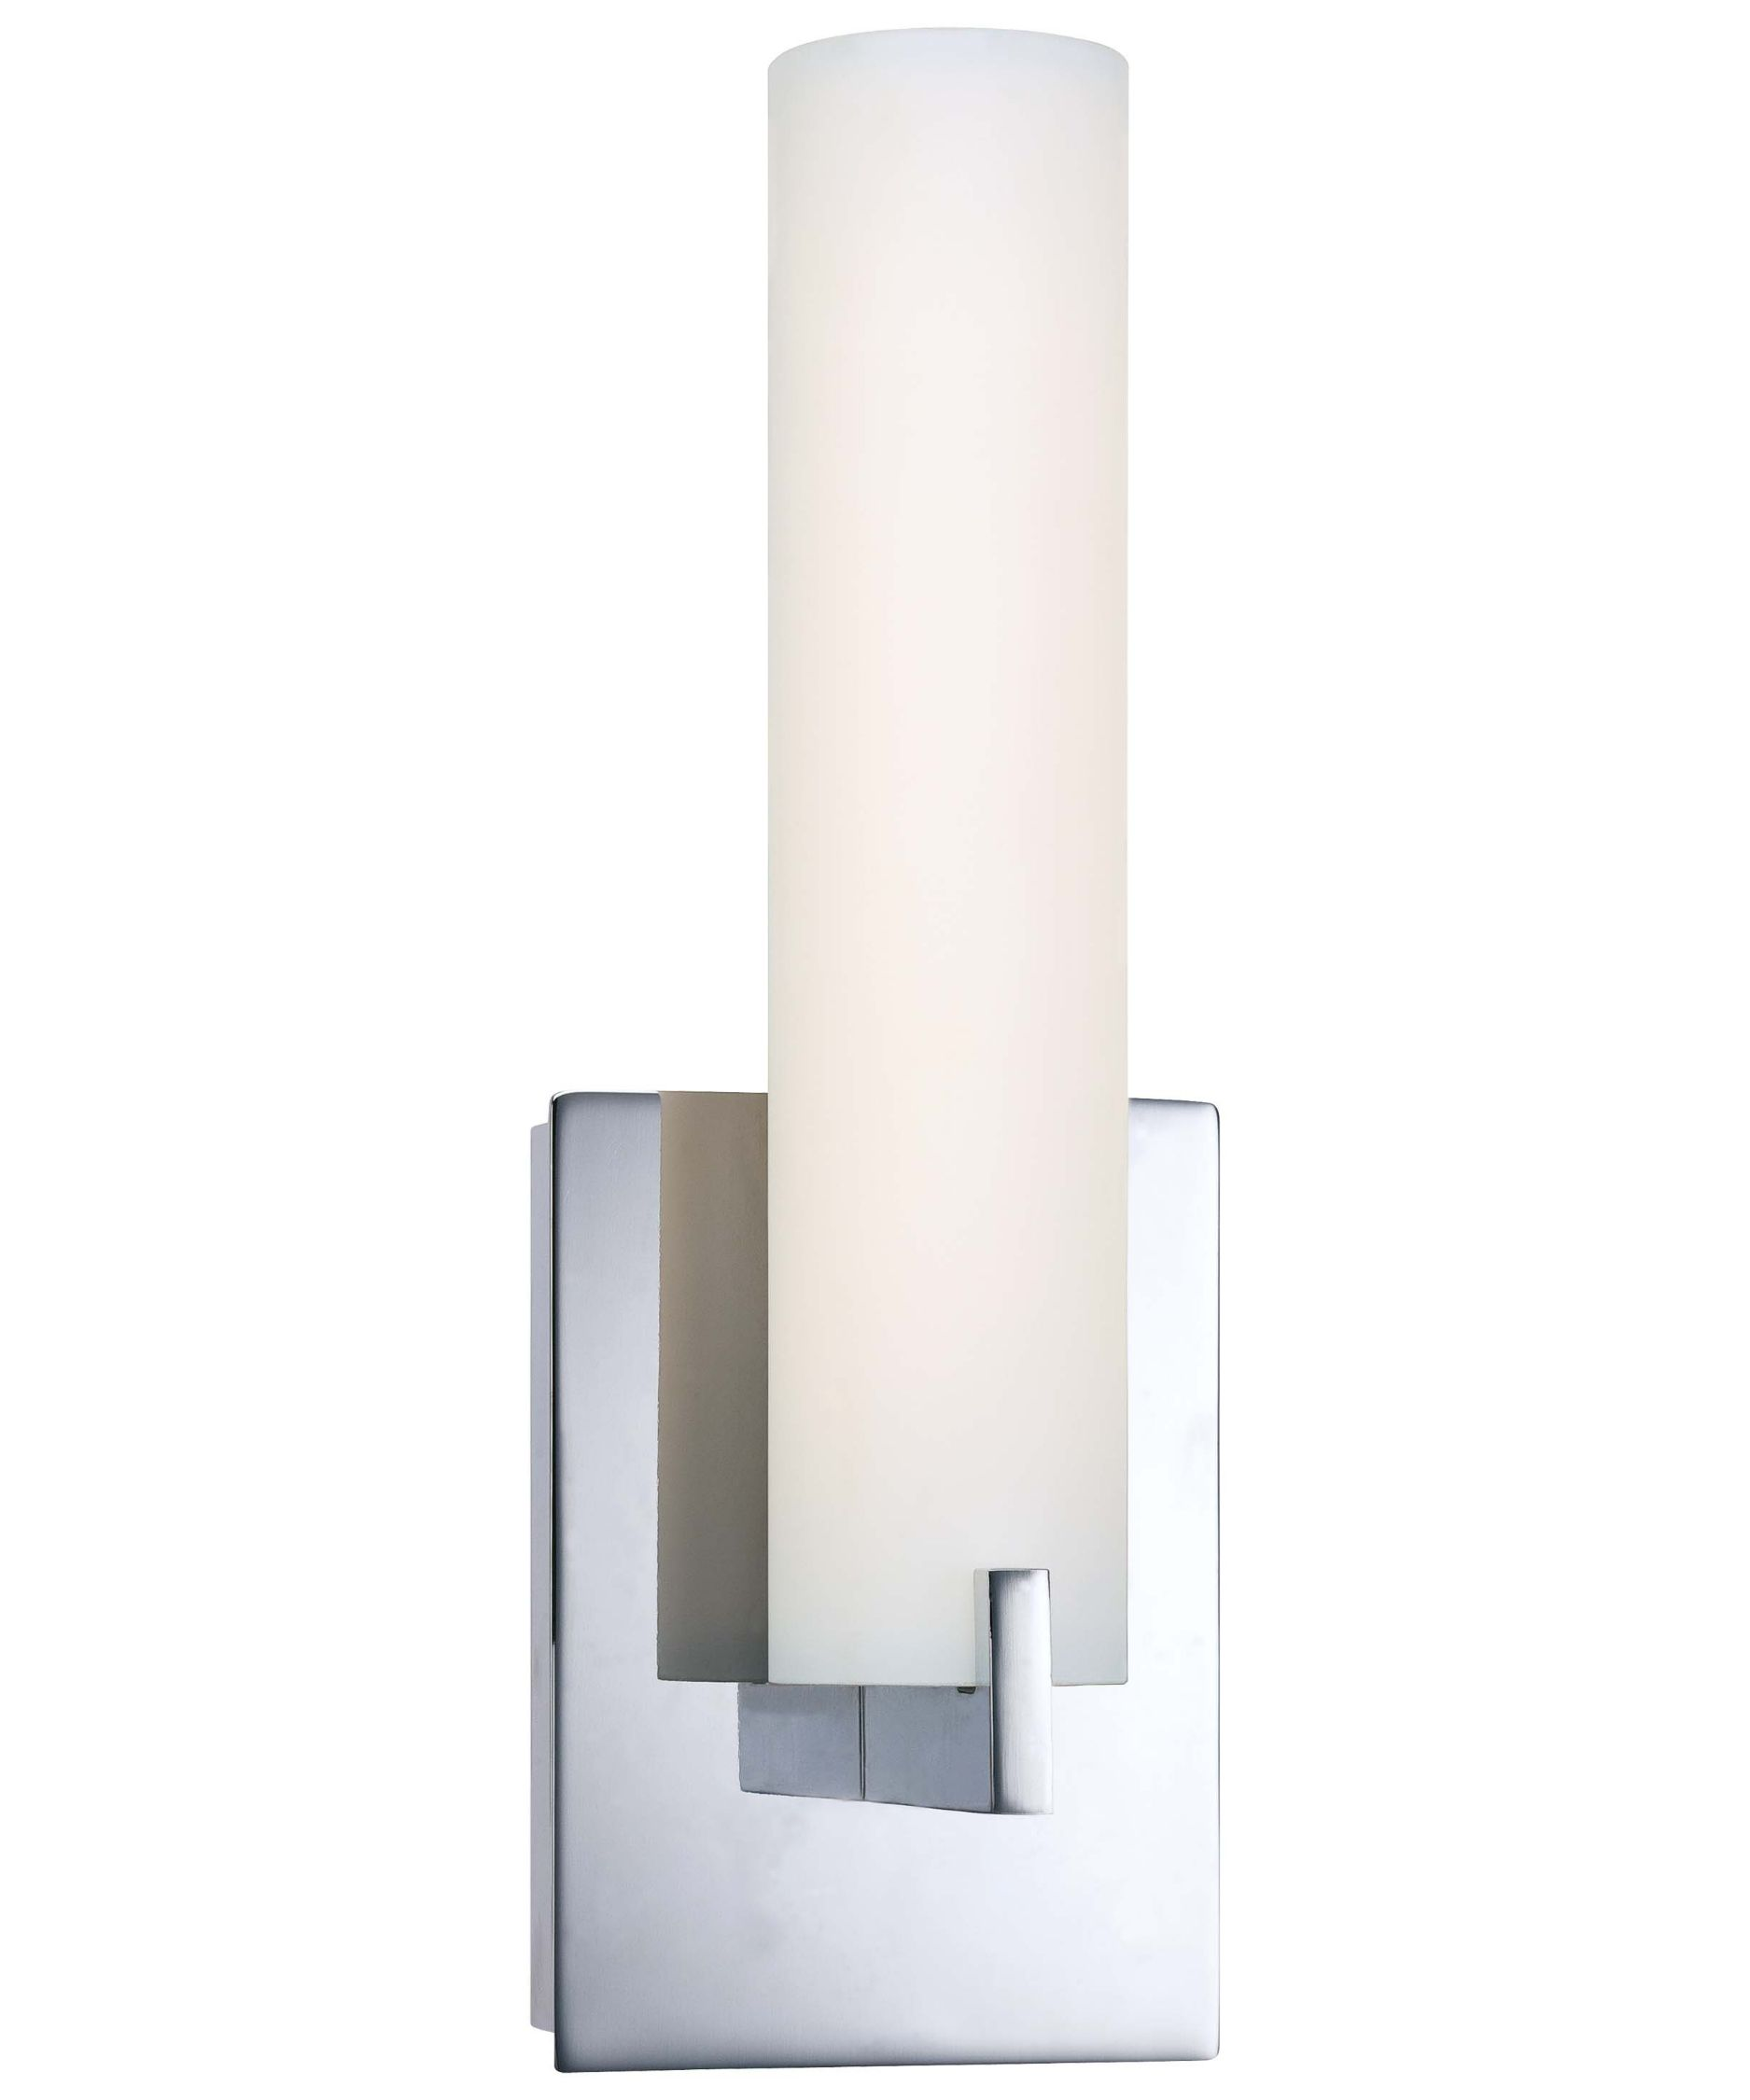 Charming Tube Chrome LED Wall Sconce W/Etched Opal Glass George Kovacs Specialty  Wall Sconces Wall I Wonder If This One Is Better Than Loft LED Bath Bar By  Modern ...